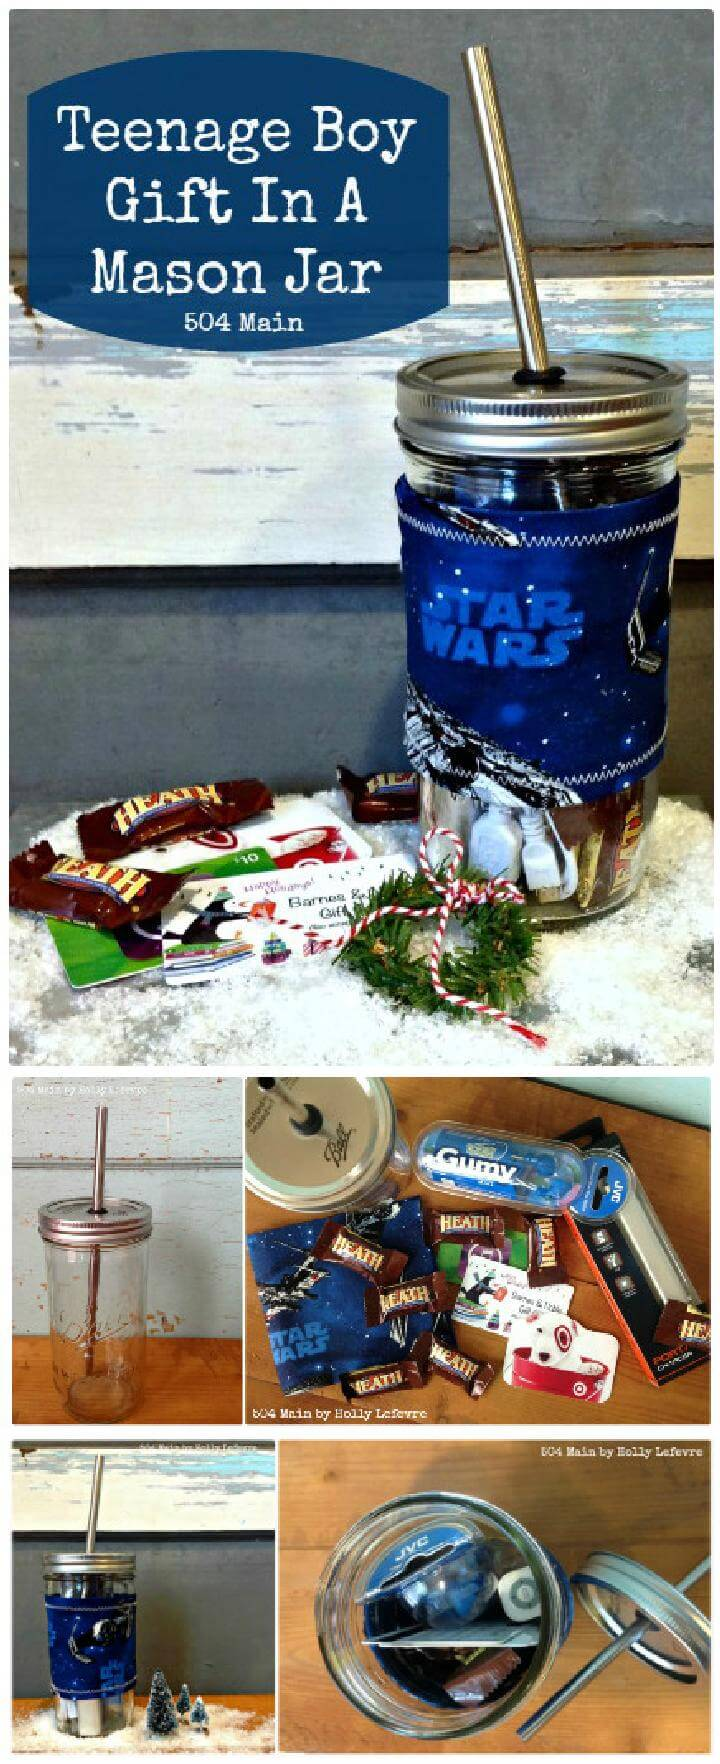 DIY Teenage Boy Gift in Mason Jar